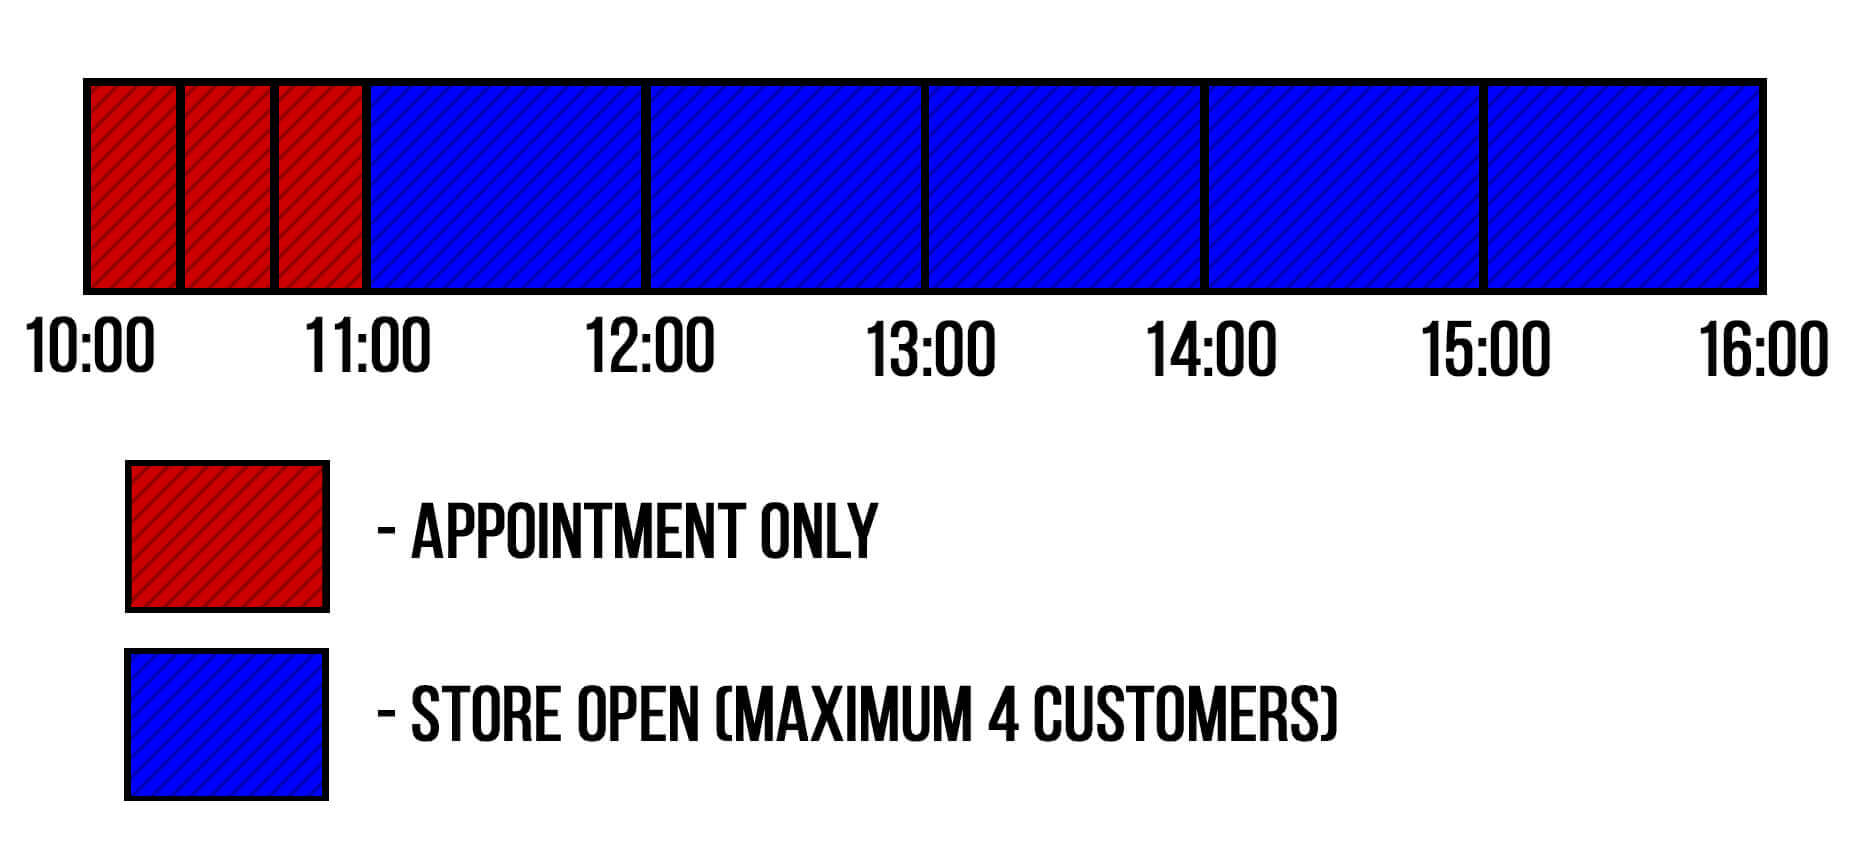 Opening times diagram